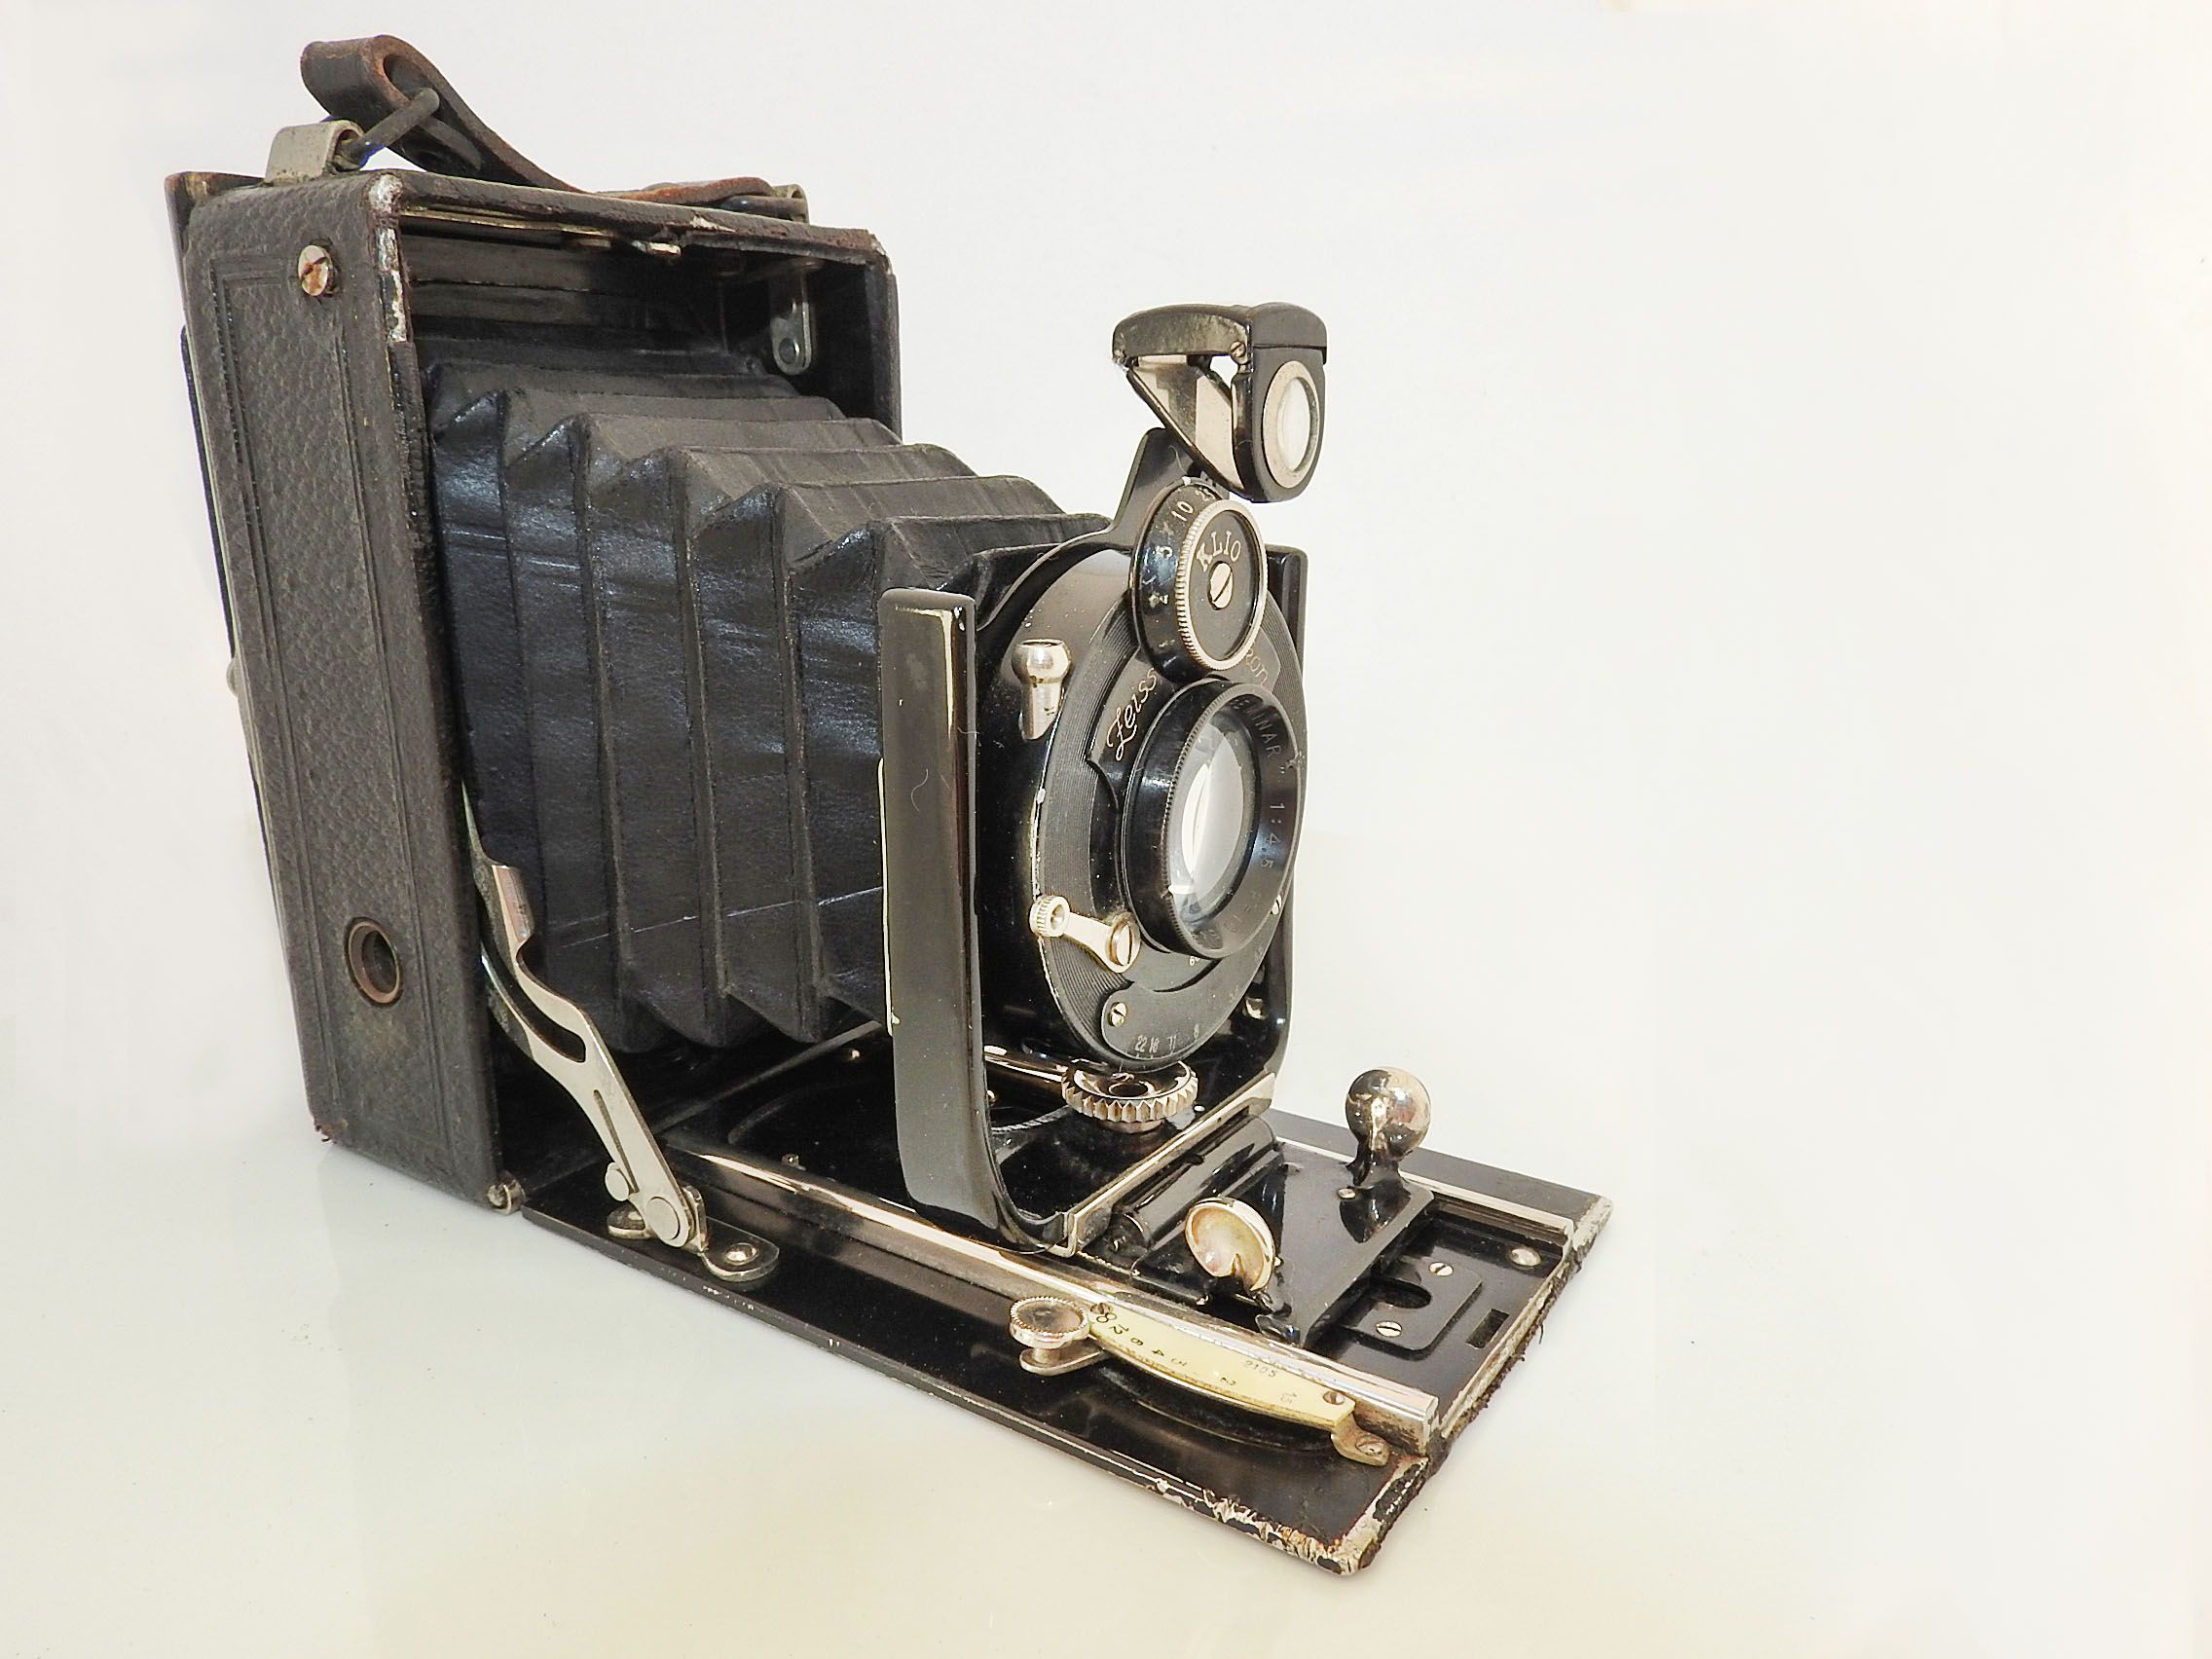 Zeiss Ikon Ica Volta Folding Plate Camera 1920s This is an average worn condition Zeiss Ikon Ica Volta 106/1 folding self-casing plate camera in 6x9cm format. Lens is a Preminar f4.5/100mm with Klio shutter, working. Probably 1925 following the merger of Ica with Zeiss.